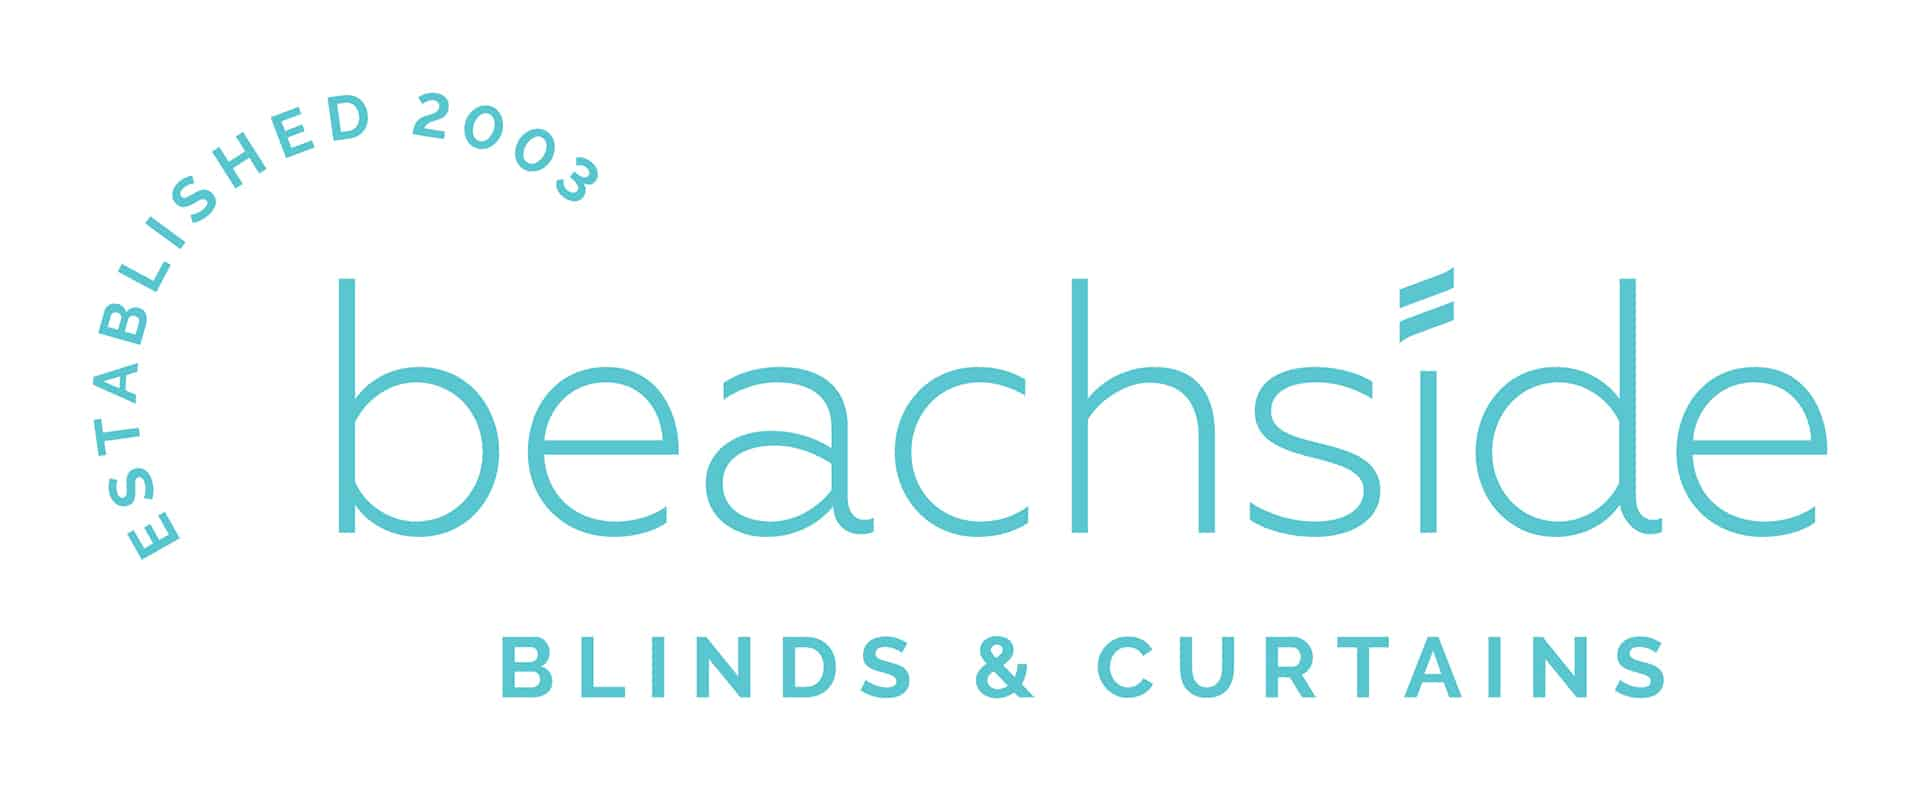 Beachside Blinds & Curtains